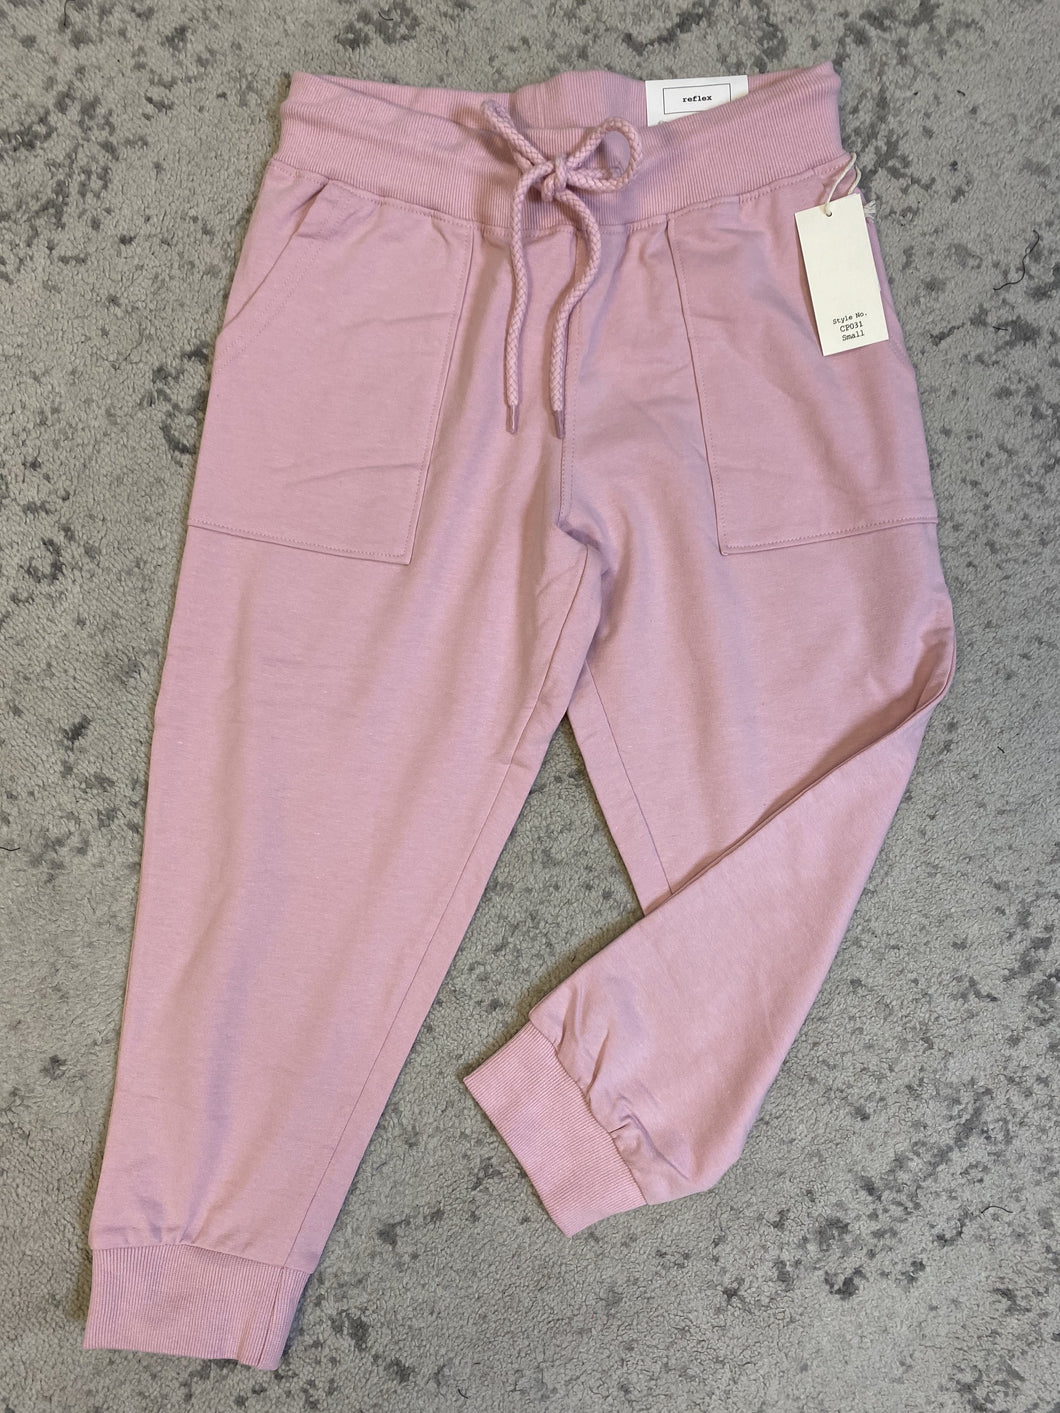 Pink Terry High Rise Capri Joggers 4/7/21 7905